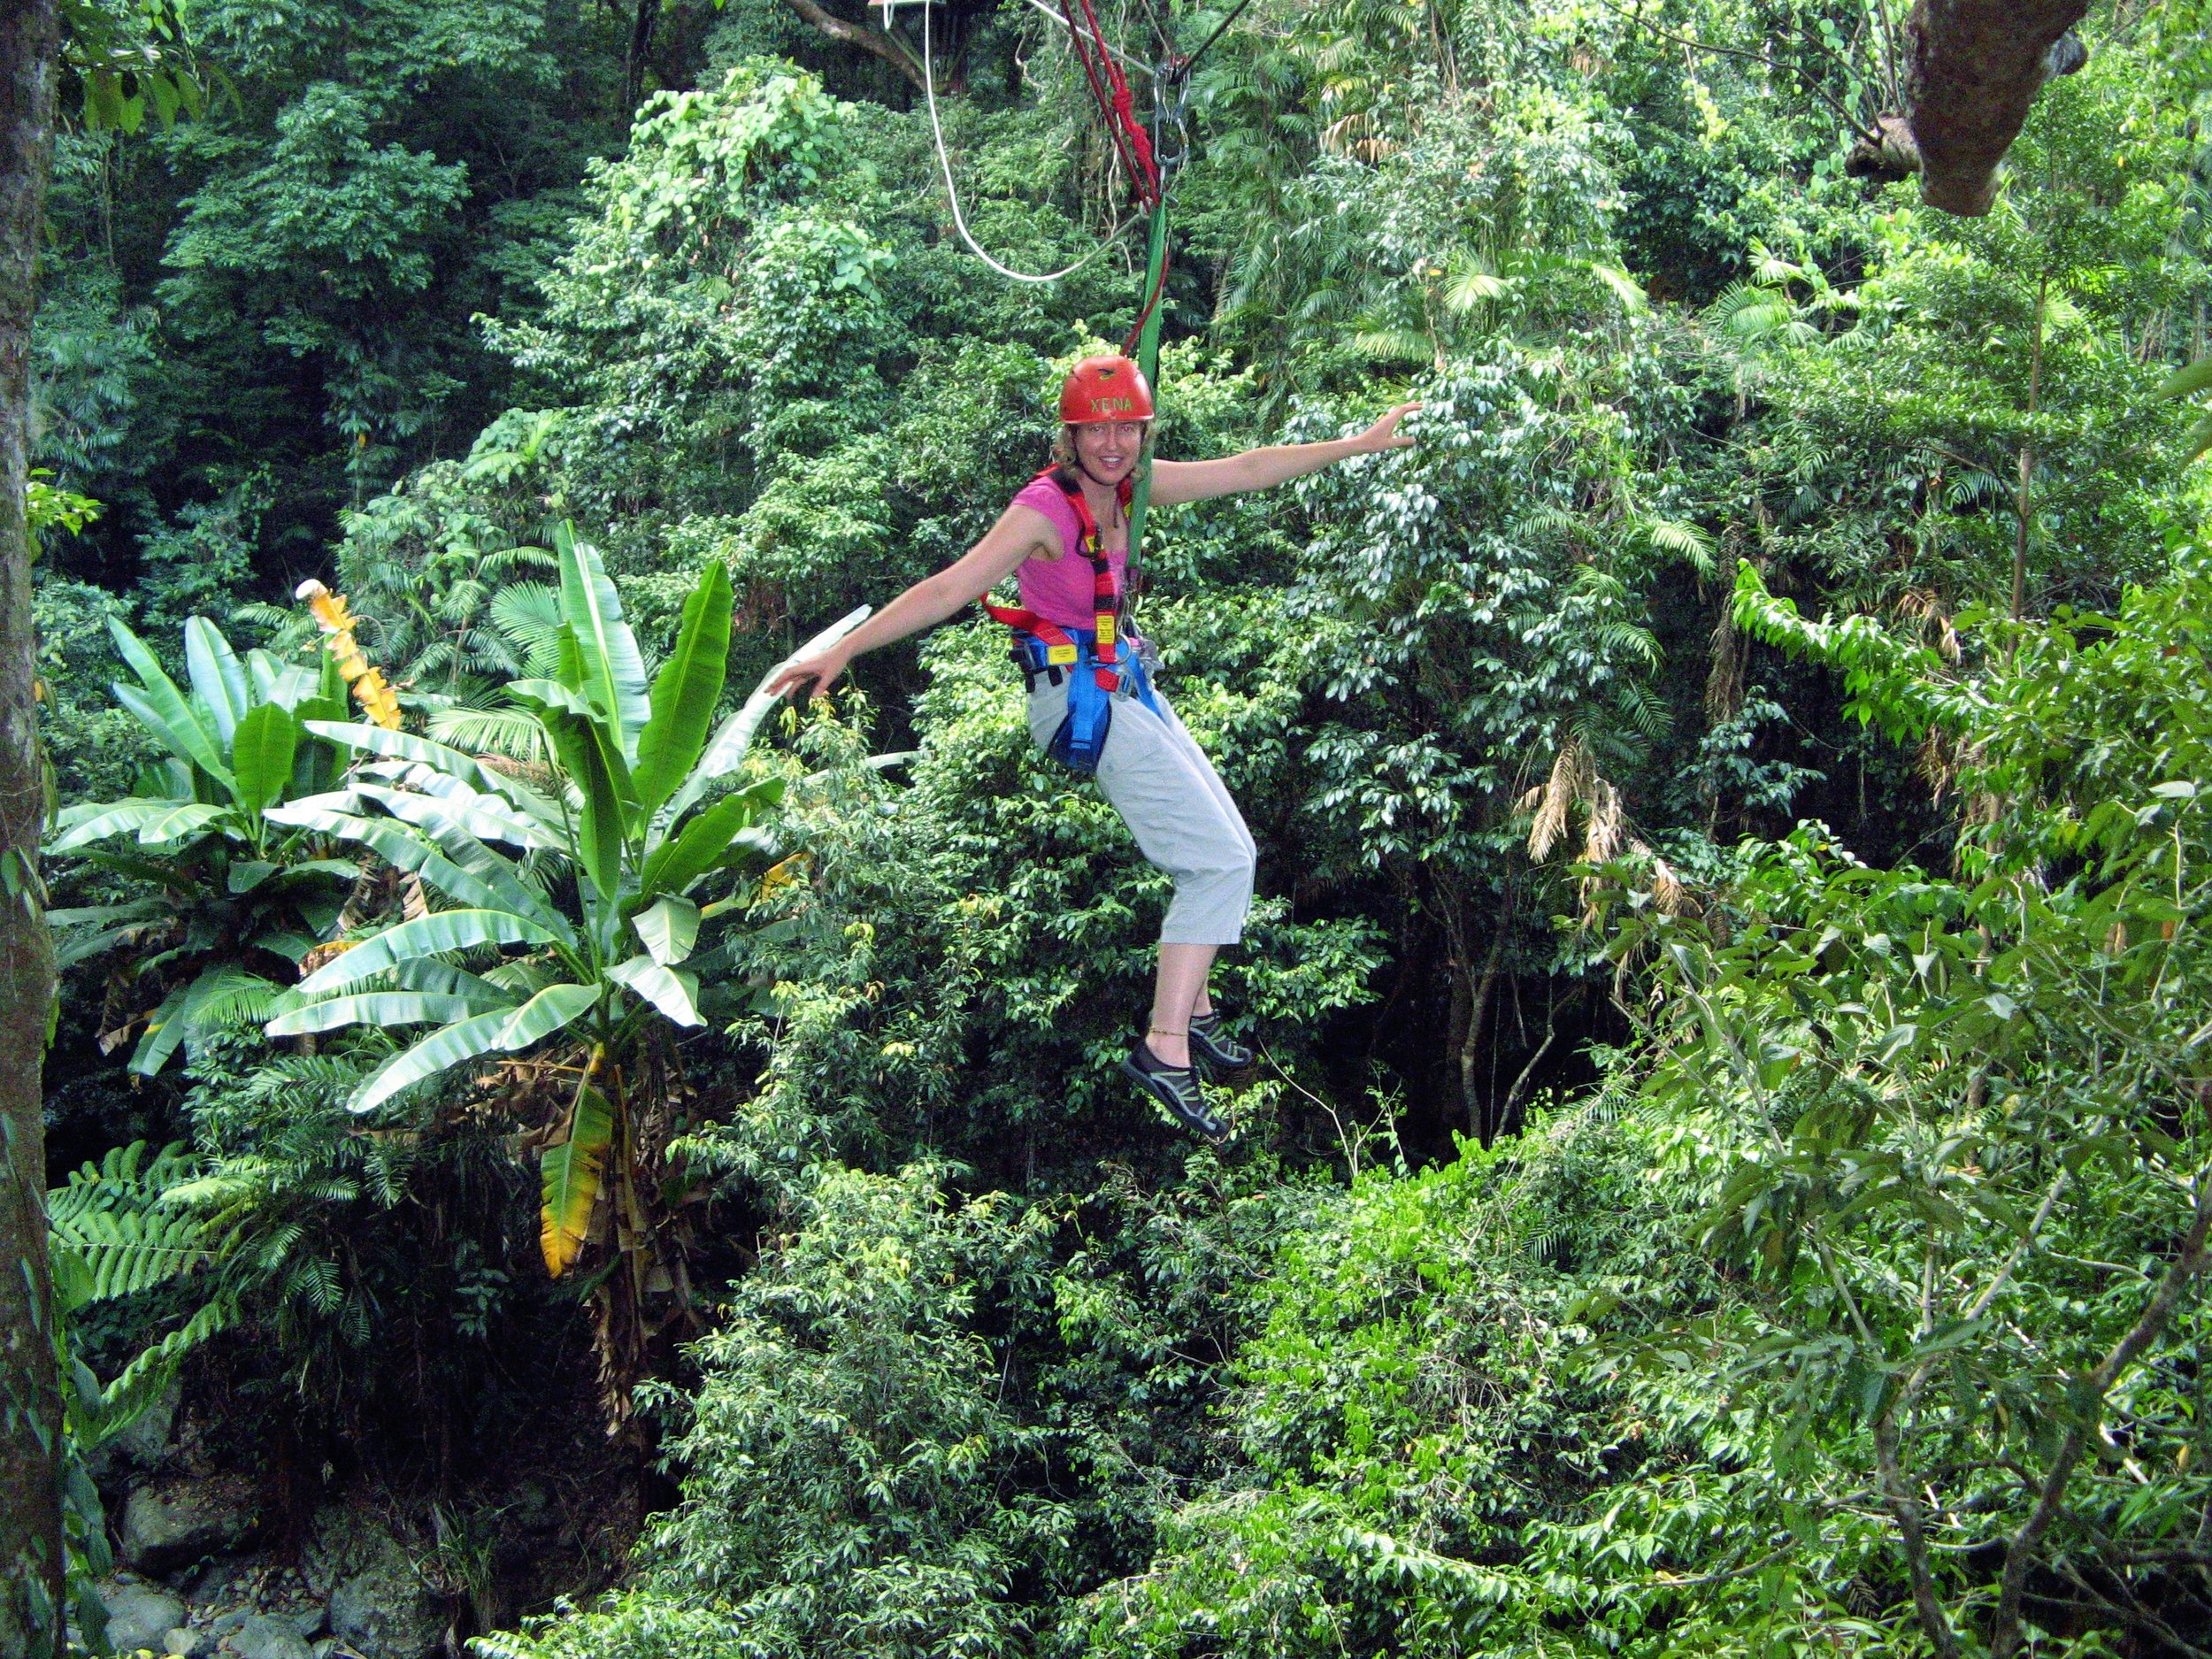 JUNGLE SURFING IN THE DAINTREE FOREST, QLD, AUSTRALIA, SEPTEMBER, 2009